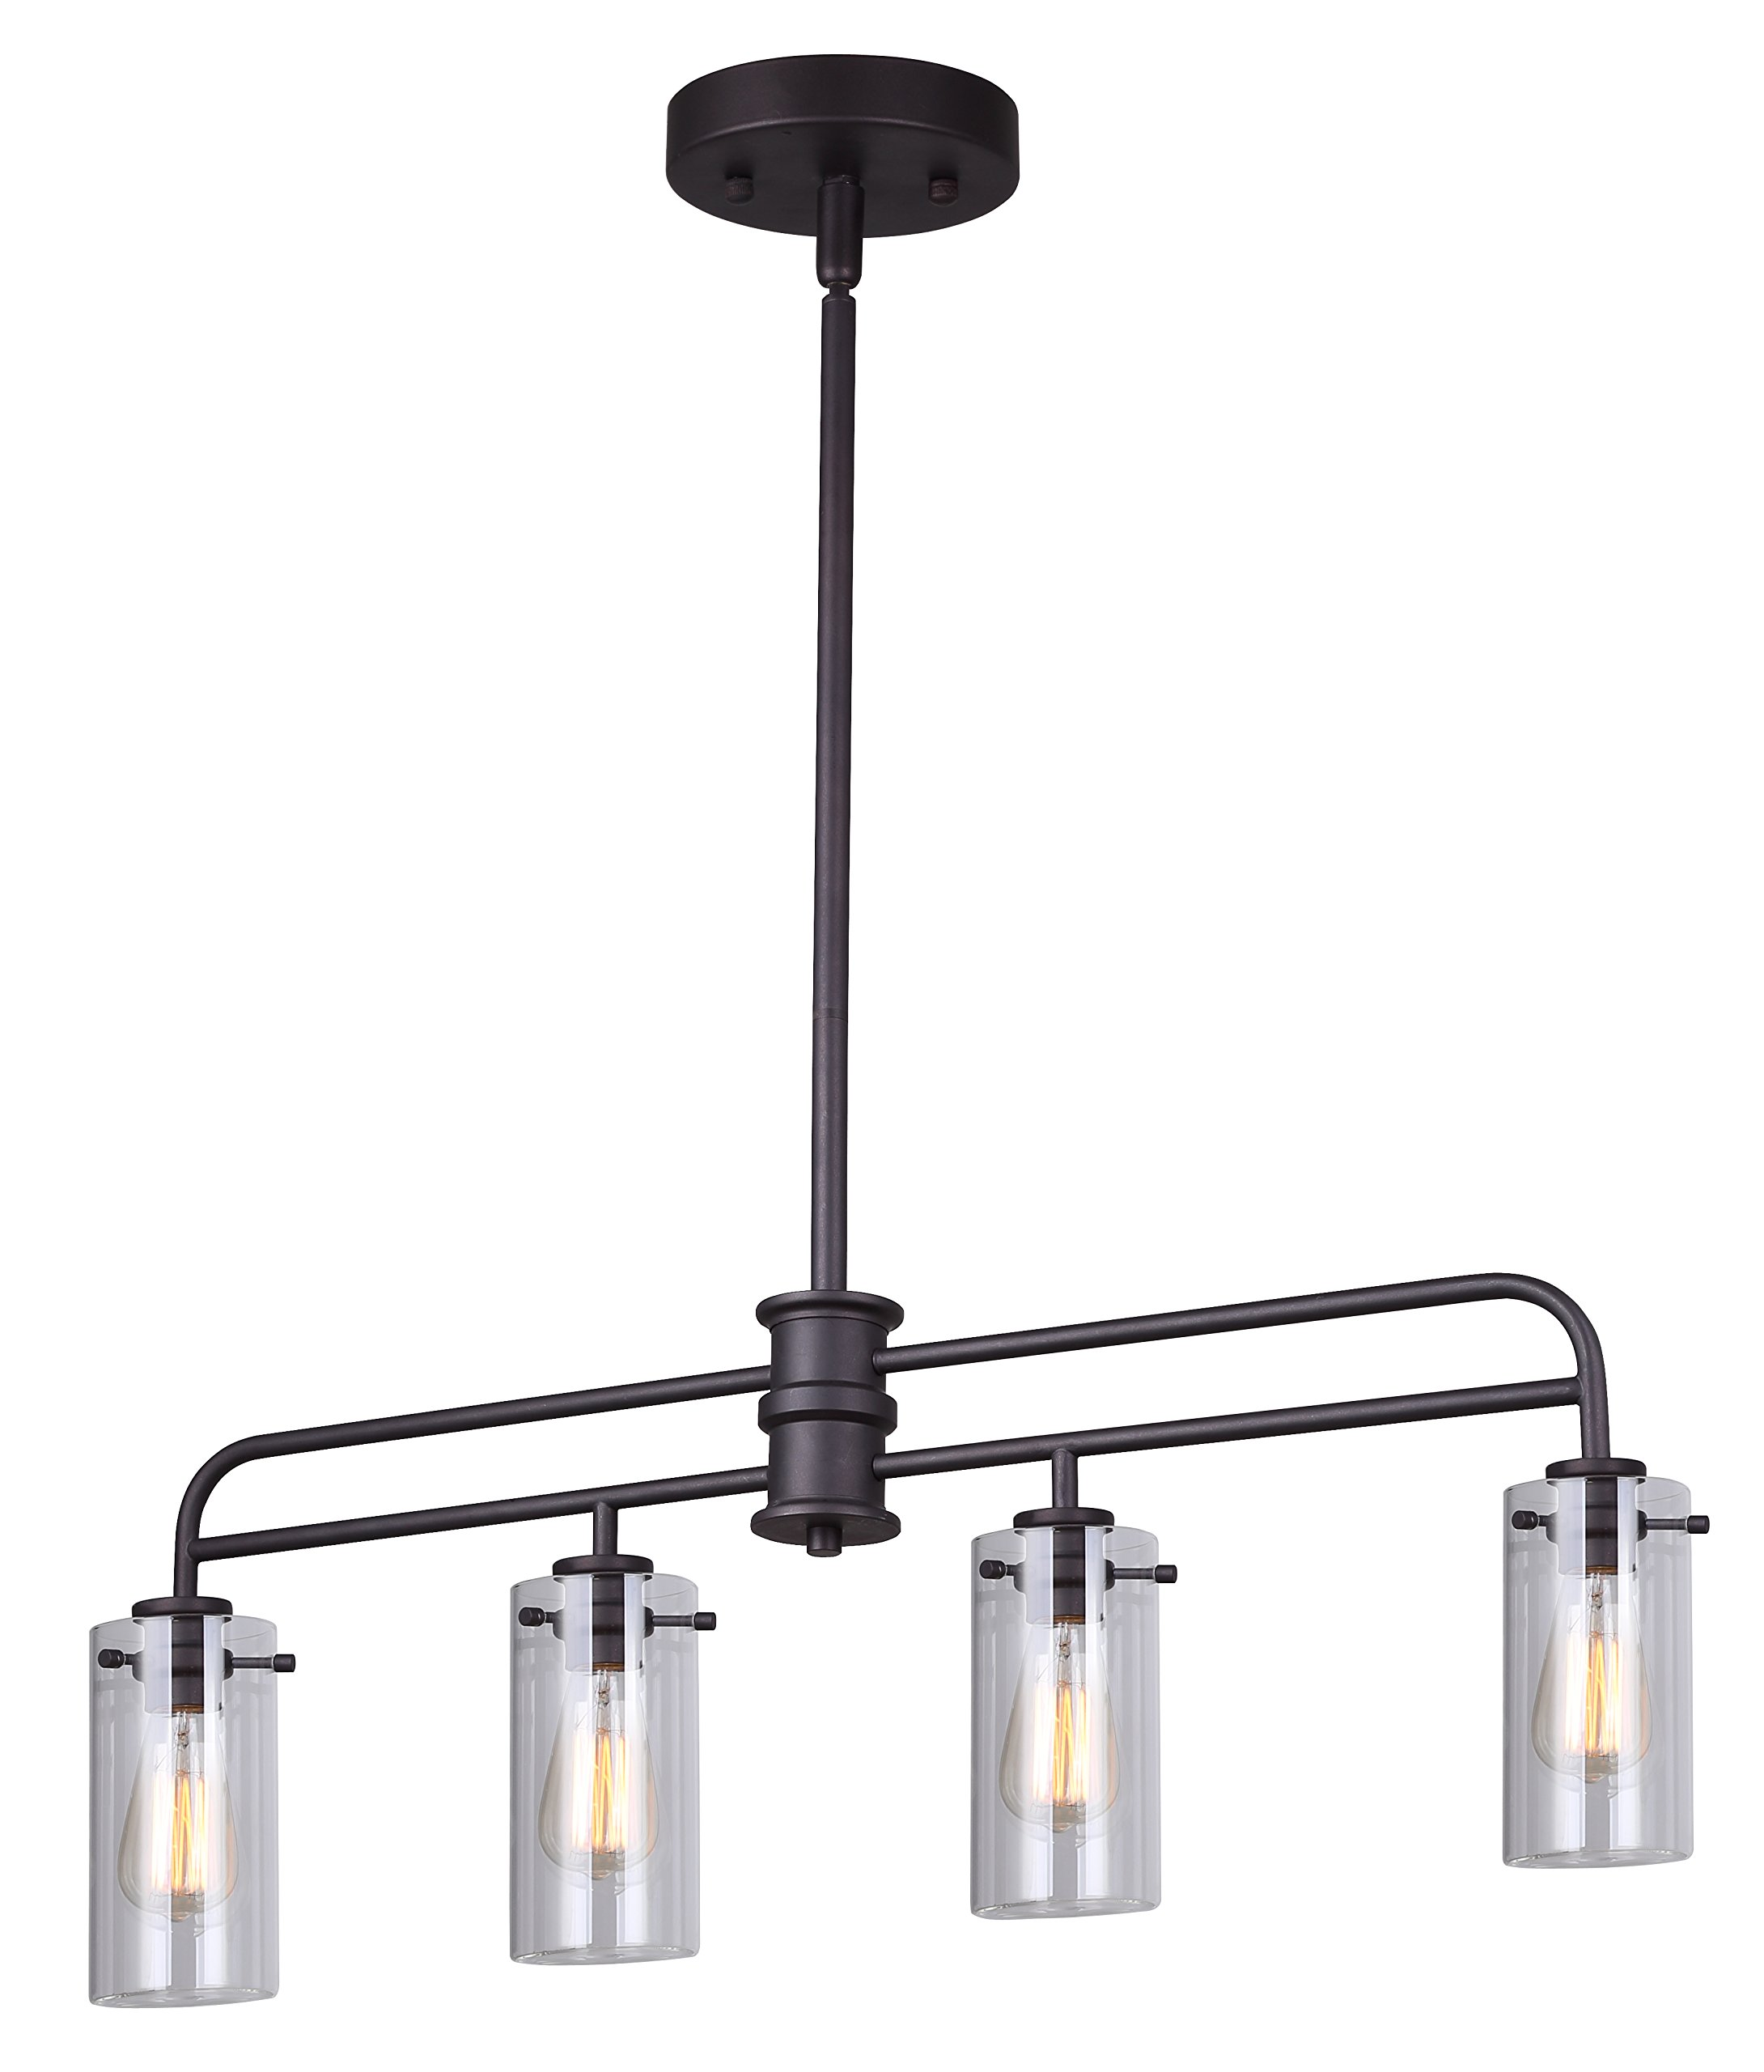 Canarm Albany 4 Light Rod Pendant with Clear Glass - Oil Rubbed Bronze Finish by Canarm